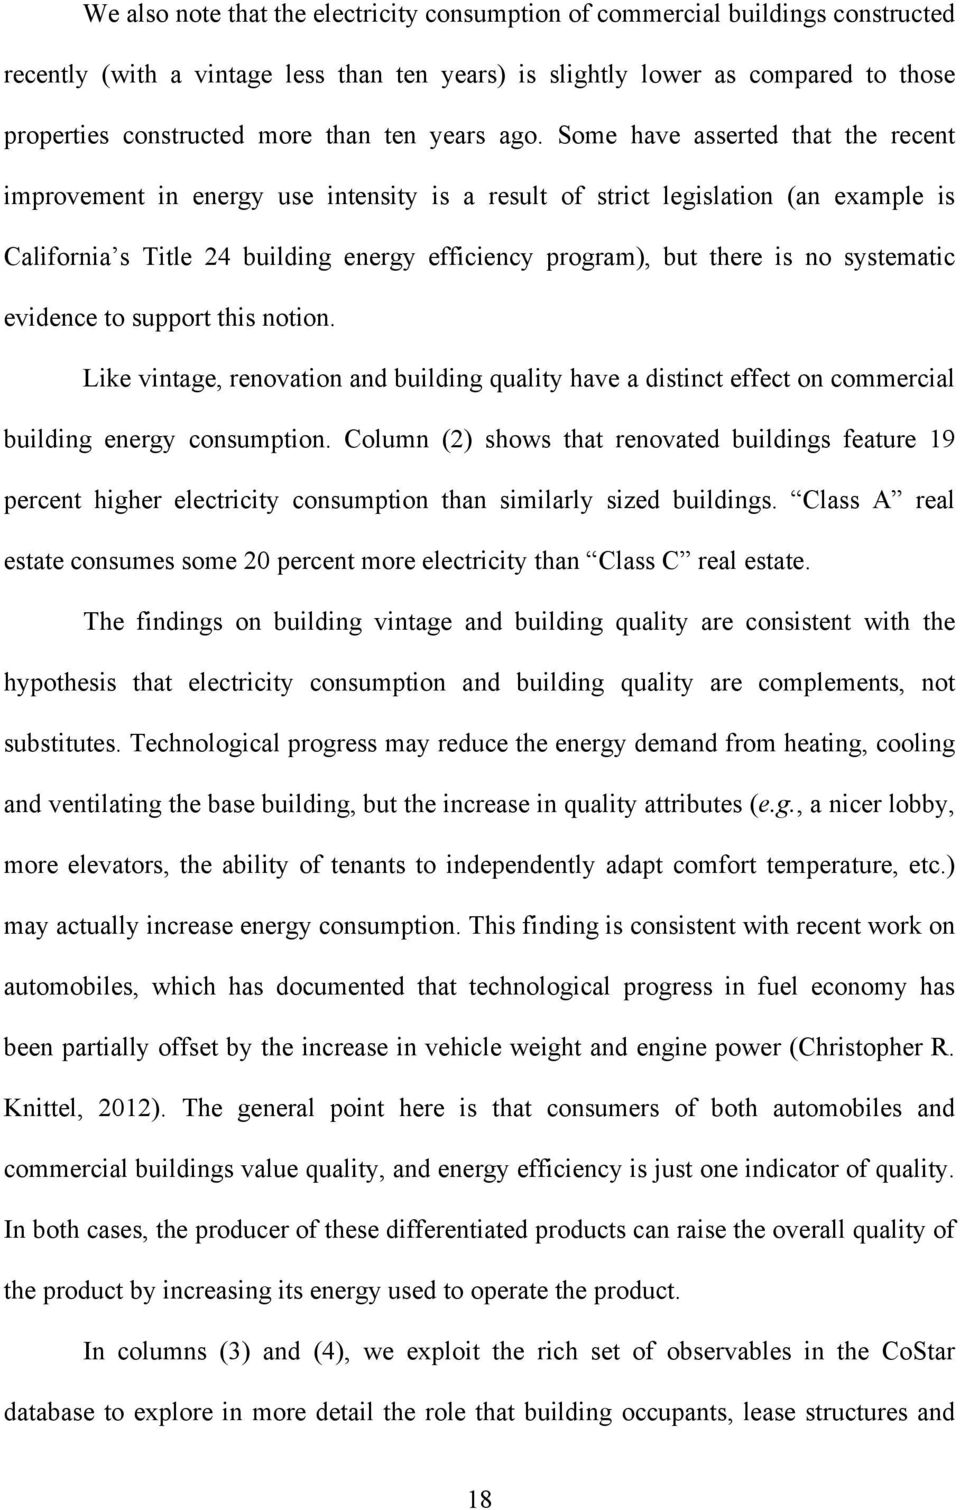 Some have asserted that the recent improvement in energy use intensity is a result of strict legislation (an example is California s Title 24 building energy efficiency program), but there is no